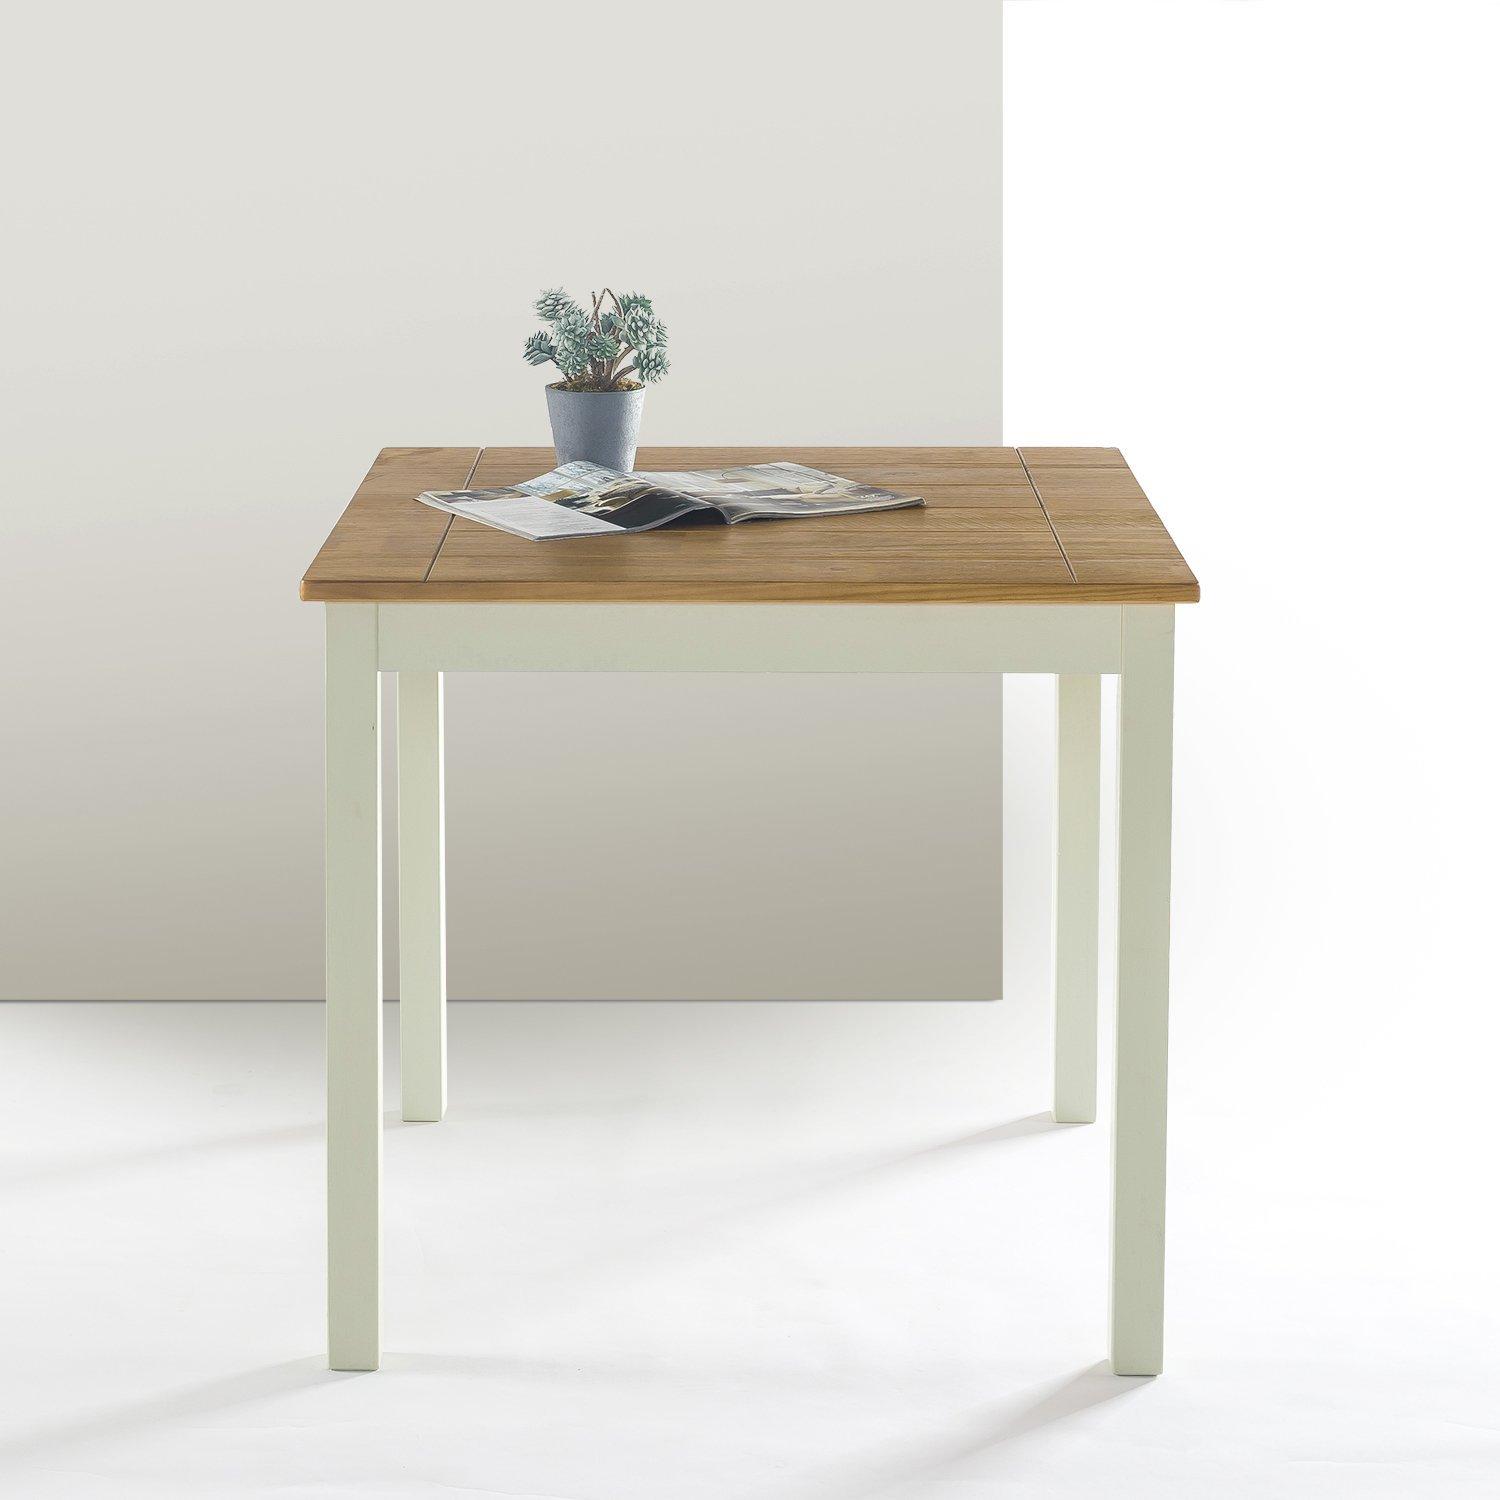 Zinus Farmhouse Square Wood Dining Table by Zinus (Image #6)